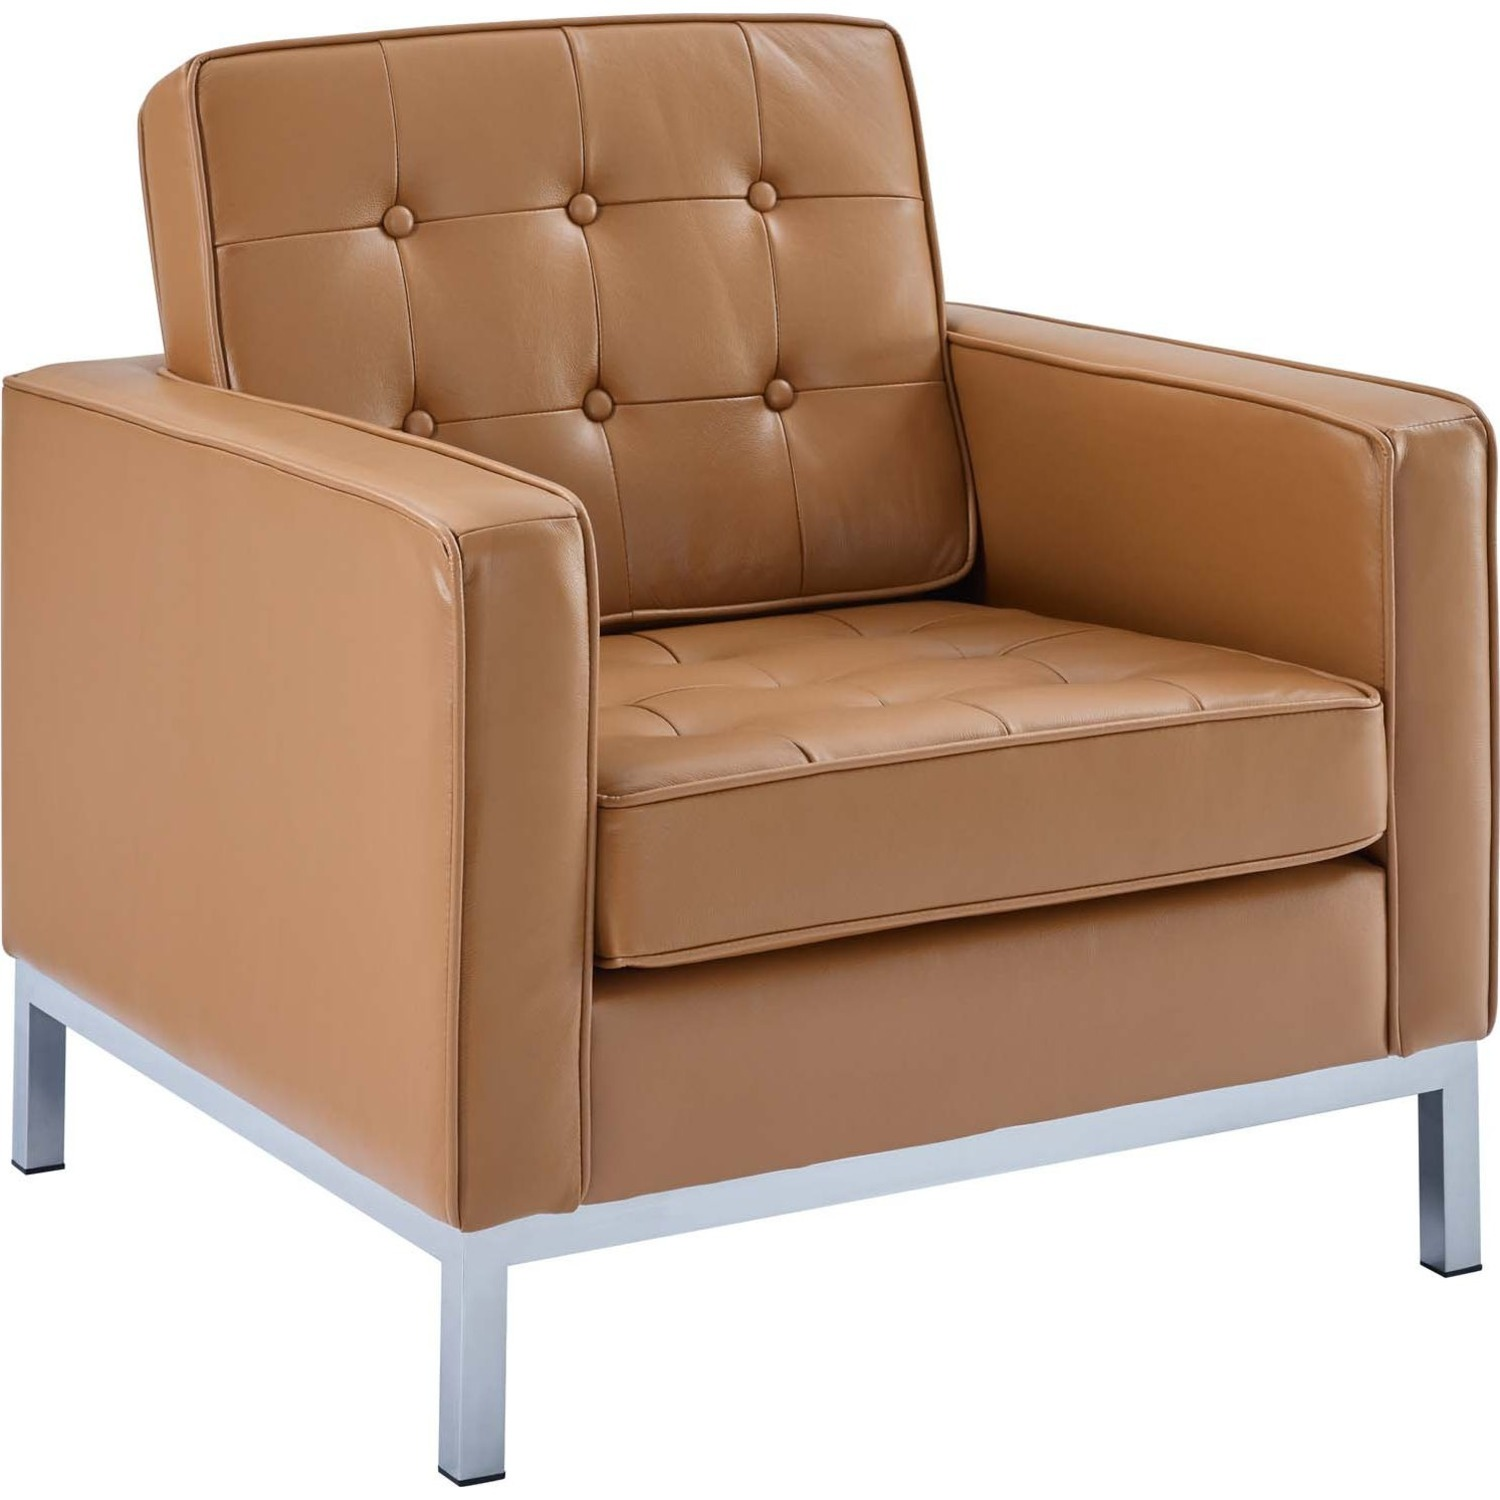 Modern Armchair In Tan Leather W/ Tufted Buttons - image-0